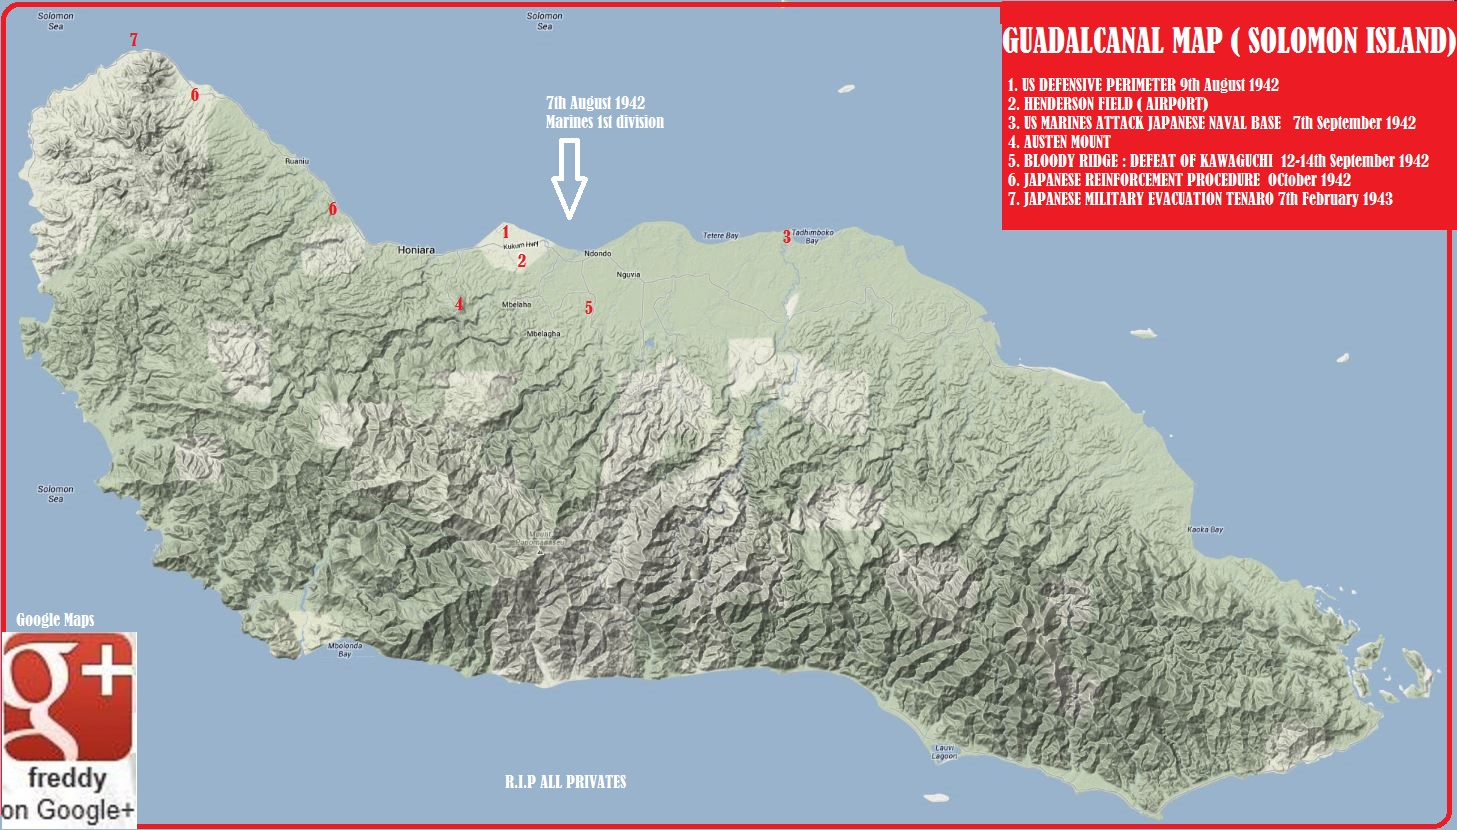 GUADALCANAL MAP by Frederic PETIT-DIEULOIS